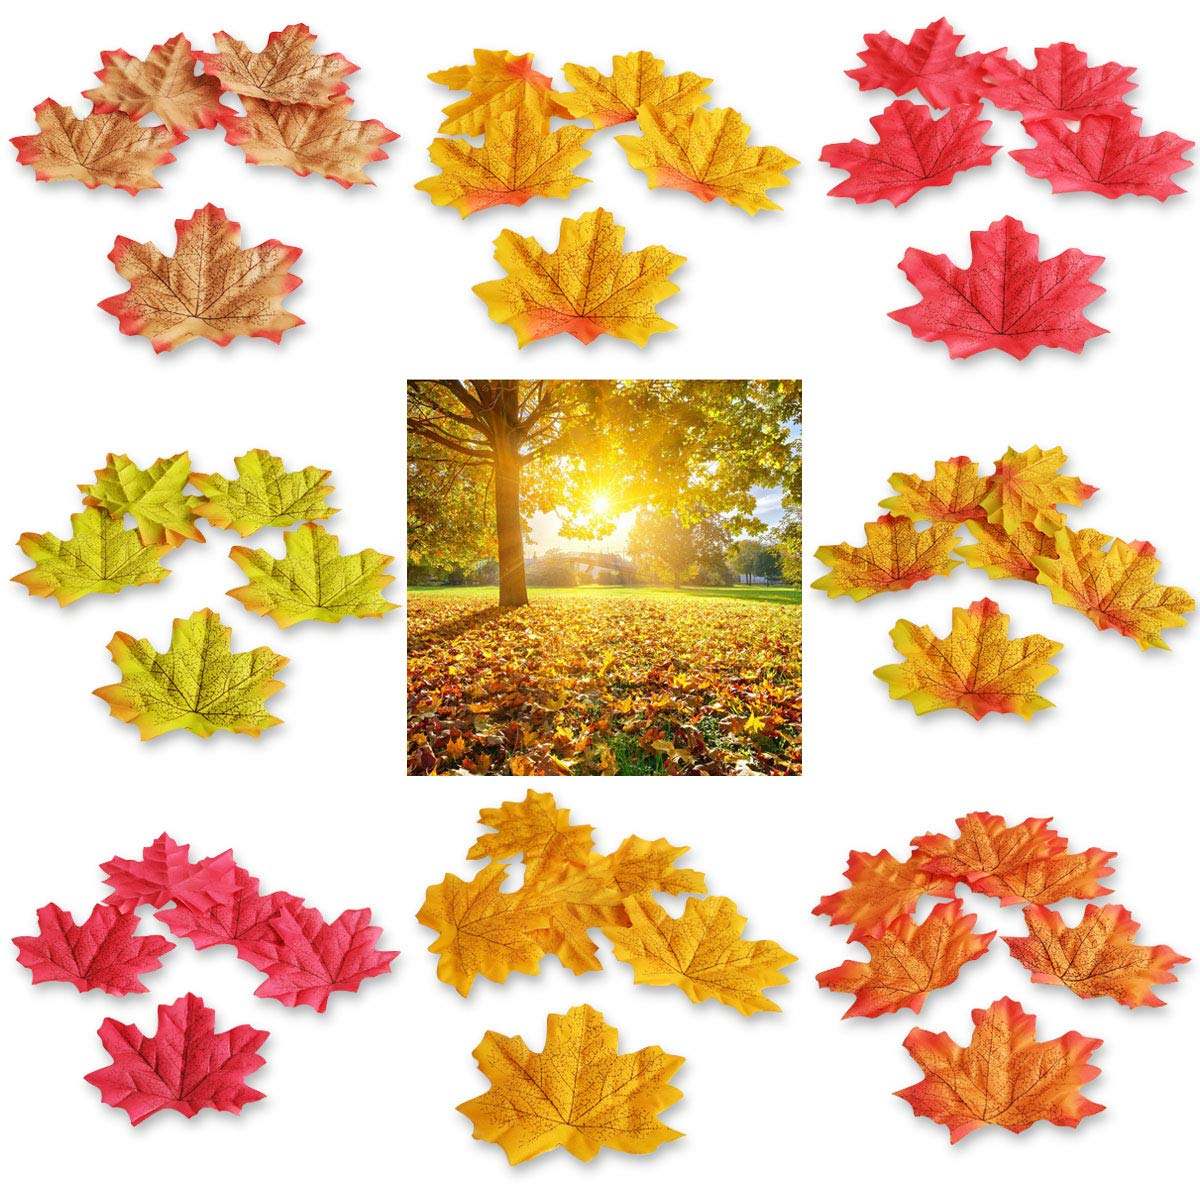 Topspeeder-400-Pieces-8-Colors-Artificial-Maple-Leaves-Assorted-Mixed-Fall-Colored-Maple-Leaves-for-Weddings-Autumn-Party-Events-and-House-Decorating-Thanksgiving-Christmas-Festival-Decorations